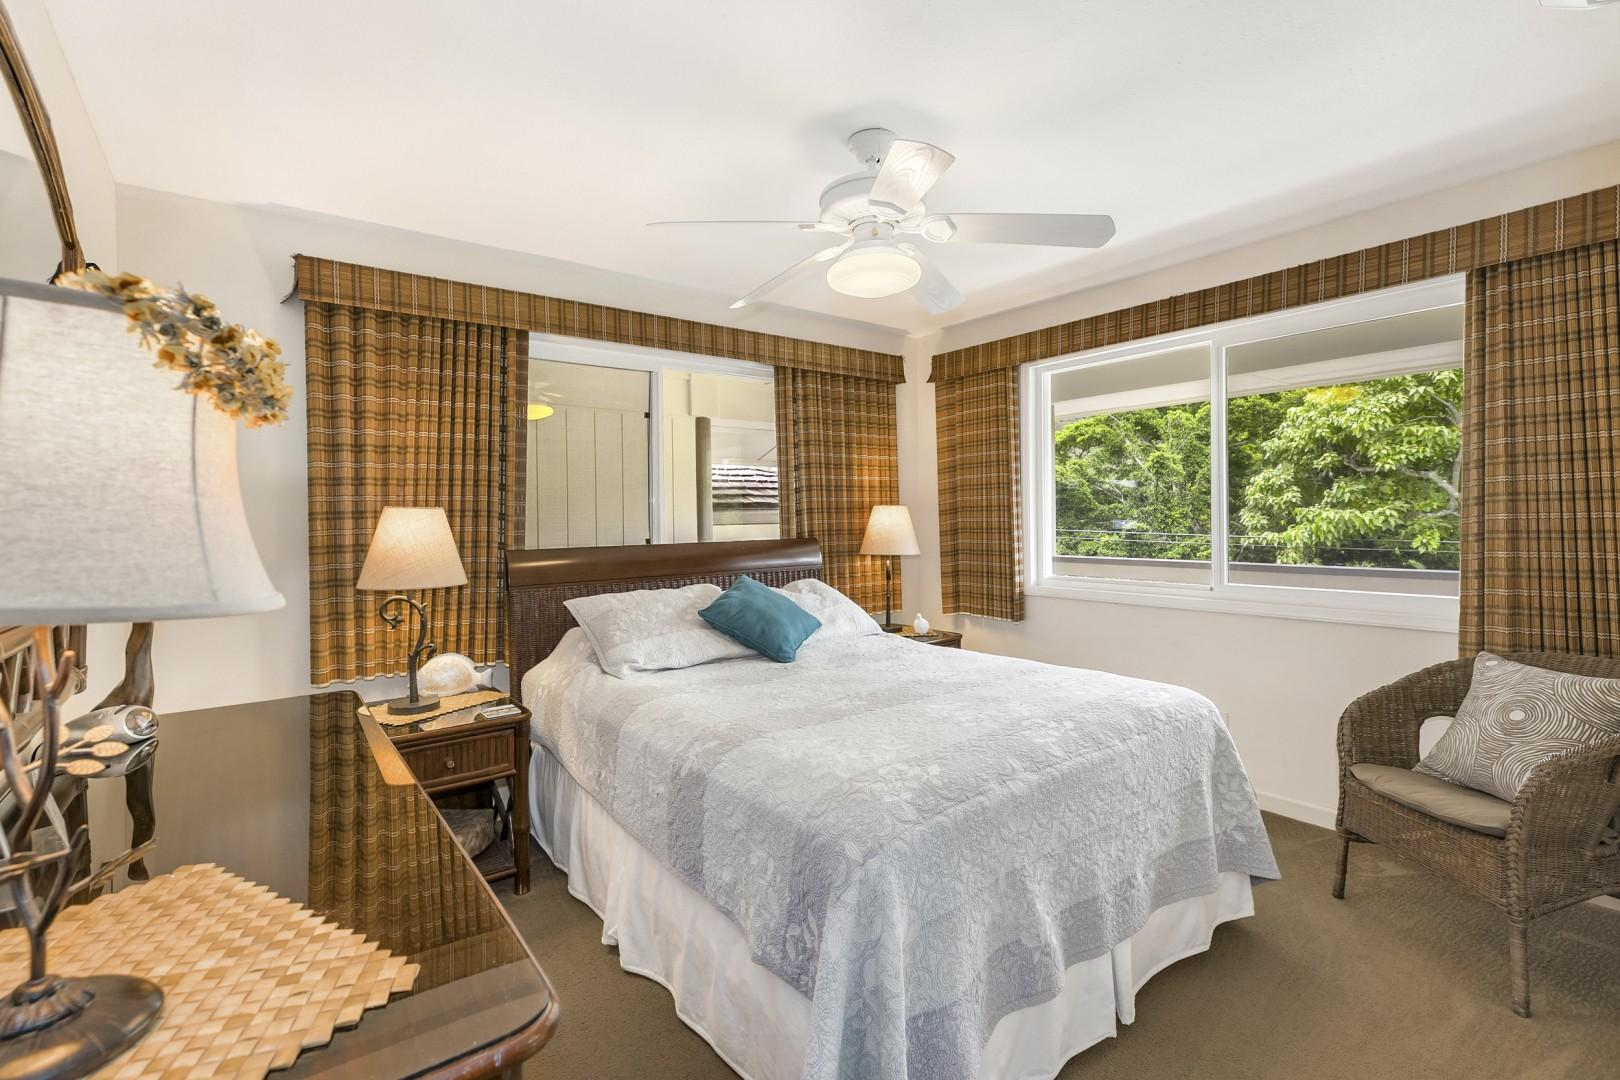 Guest bedroom upstairs with dresser and ceiling fan.